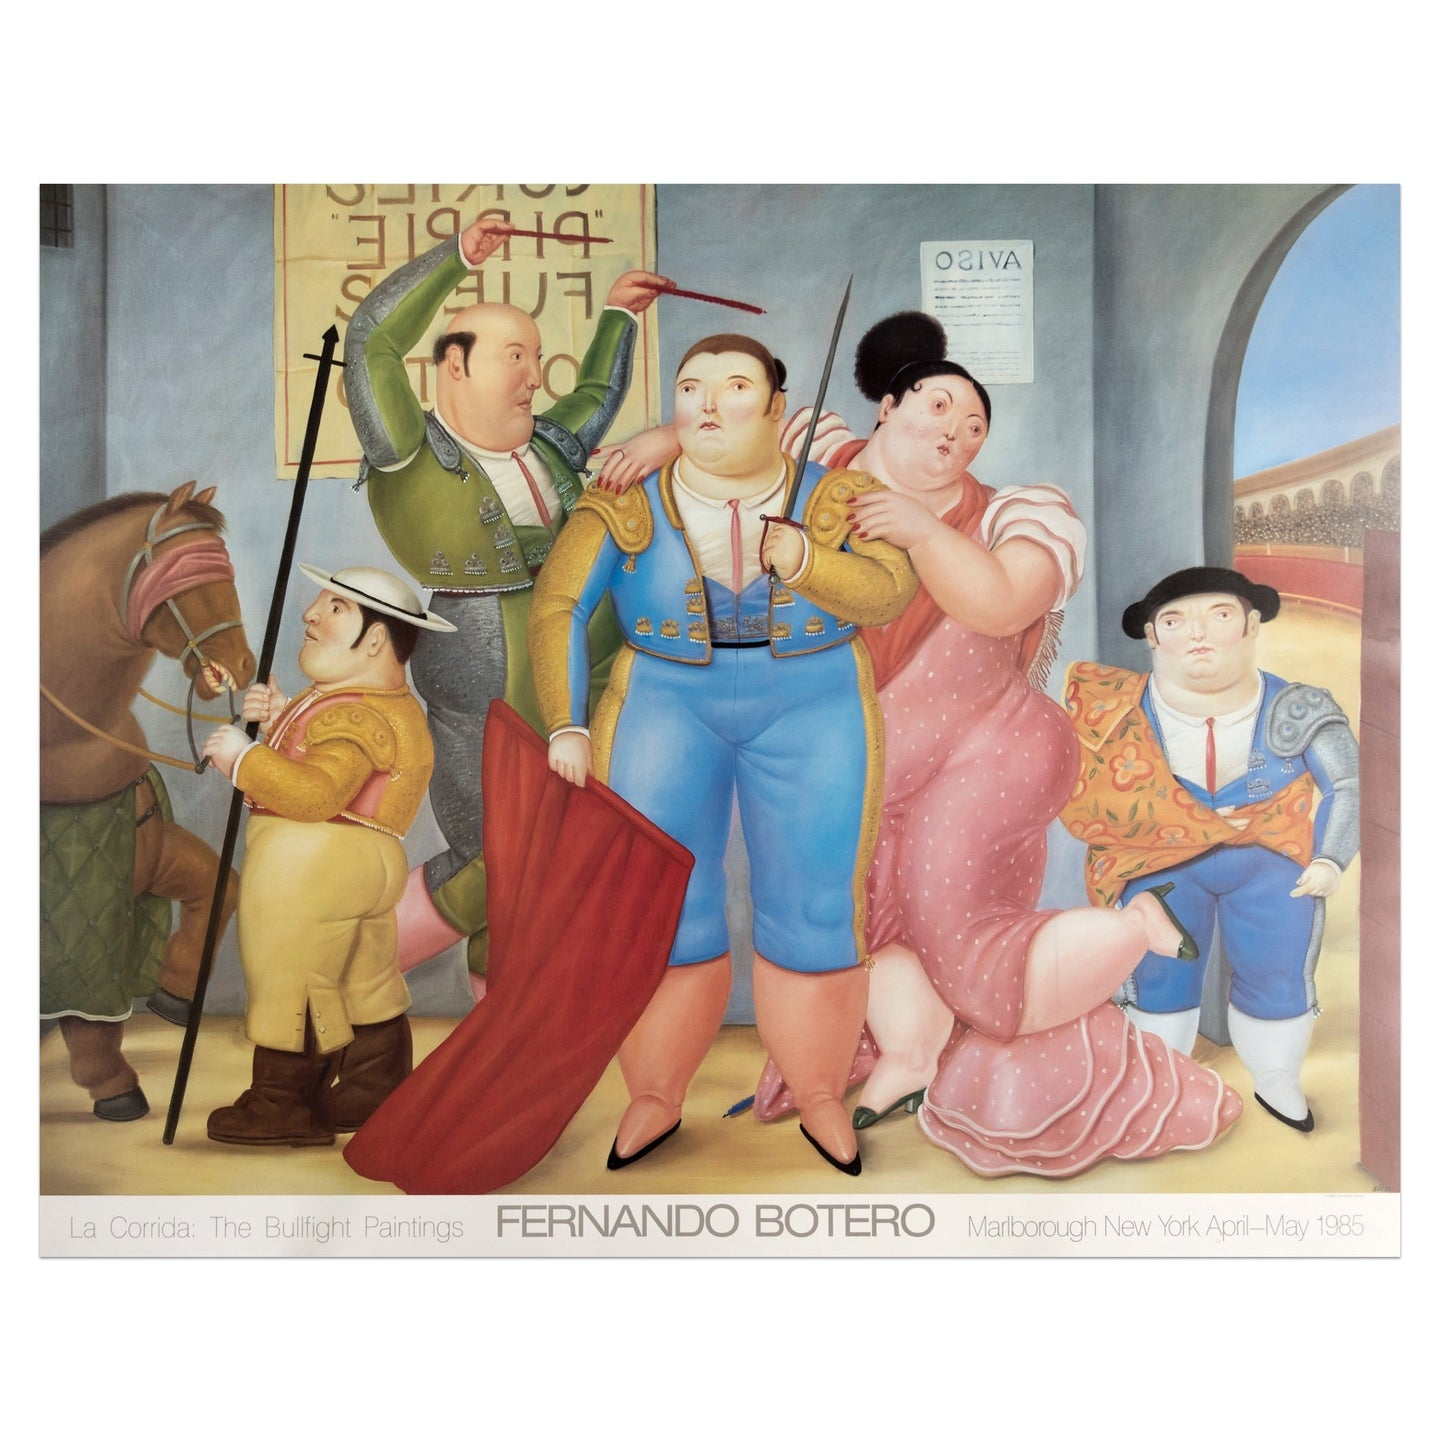 1985 Marlborough New York poster for Fernando Botero's bullfight paintings; featuring five figures and a horse